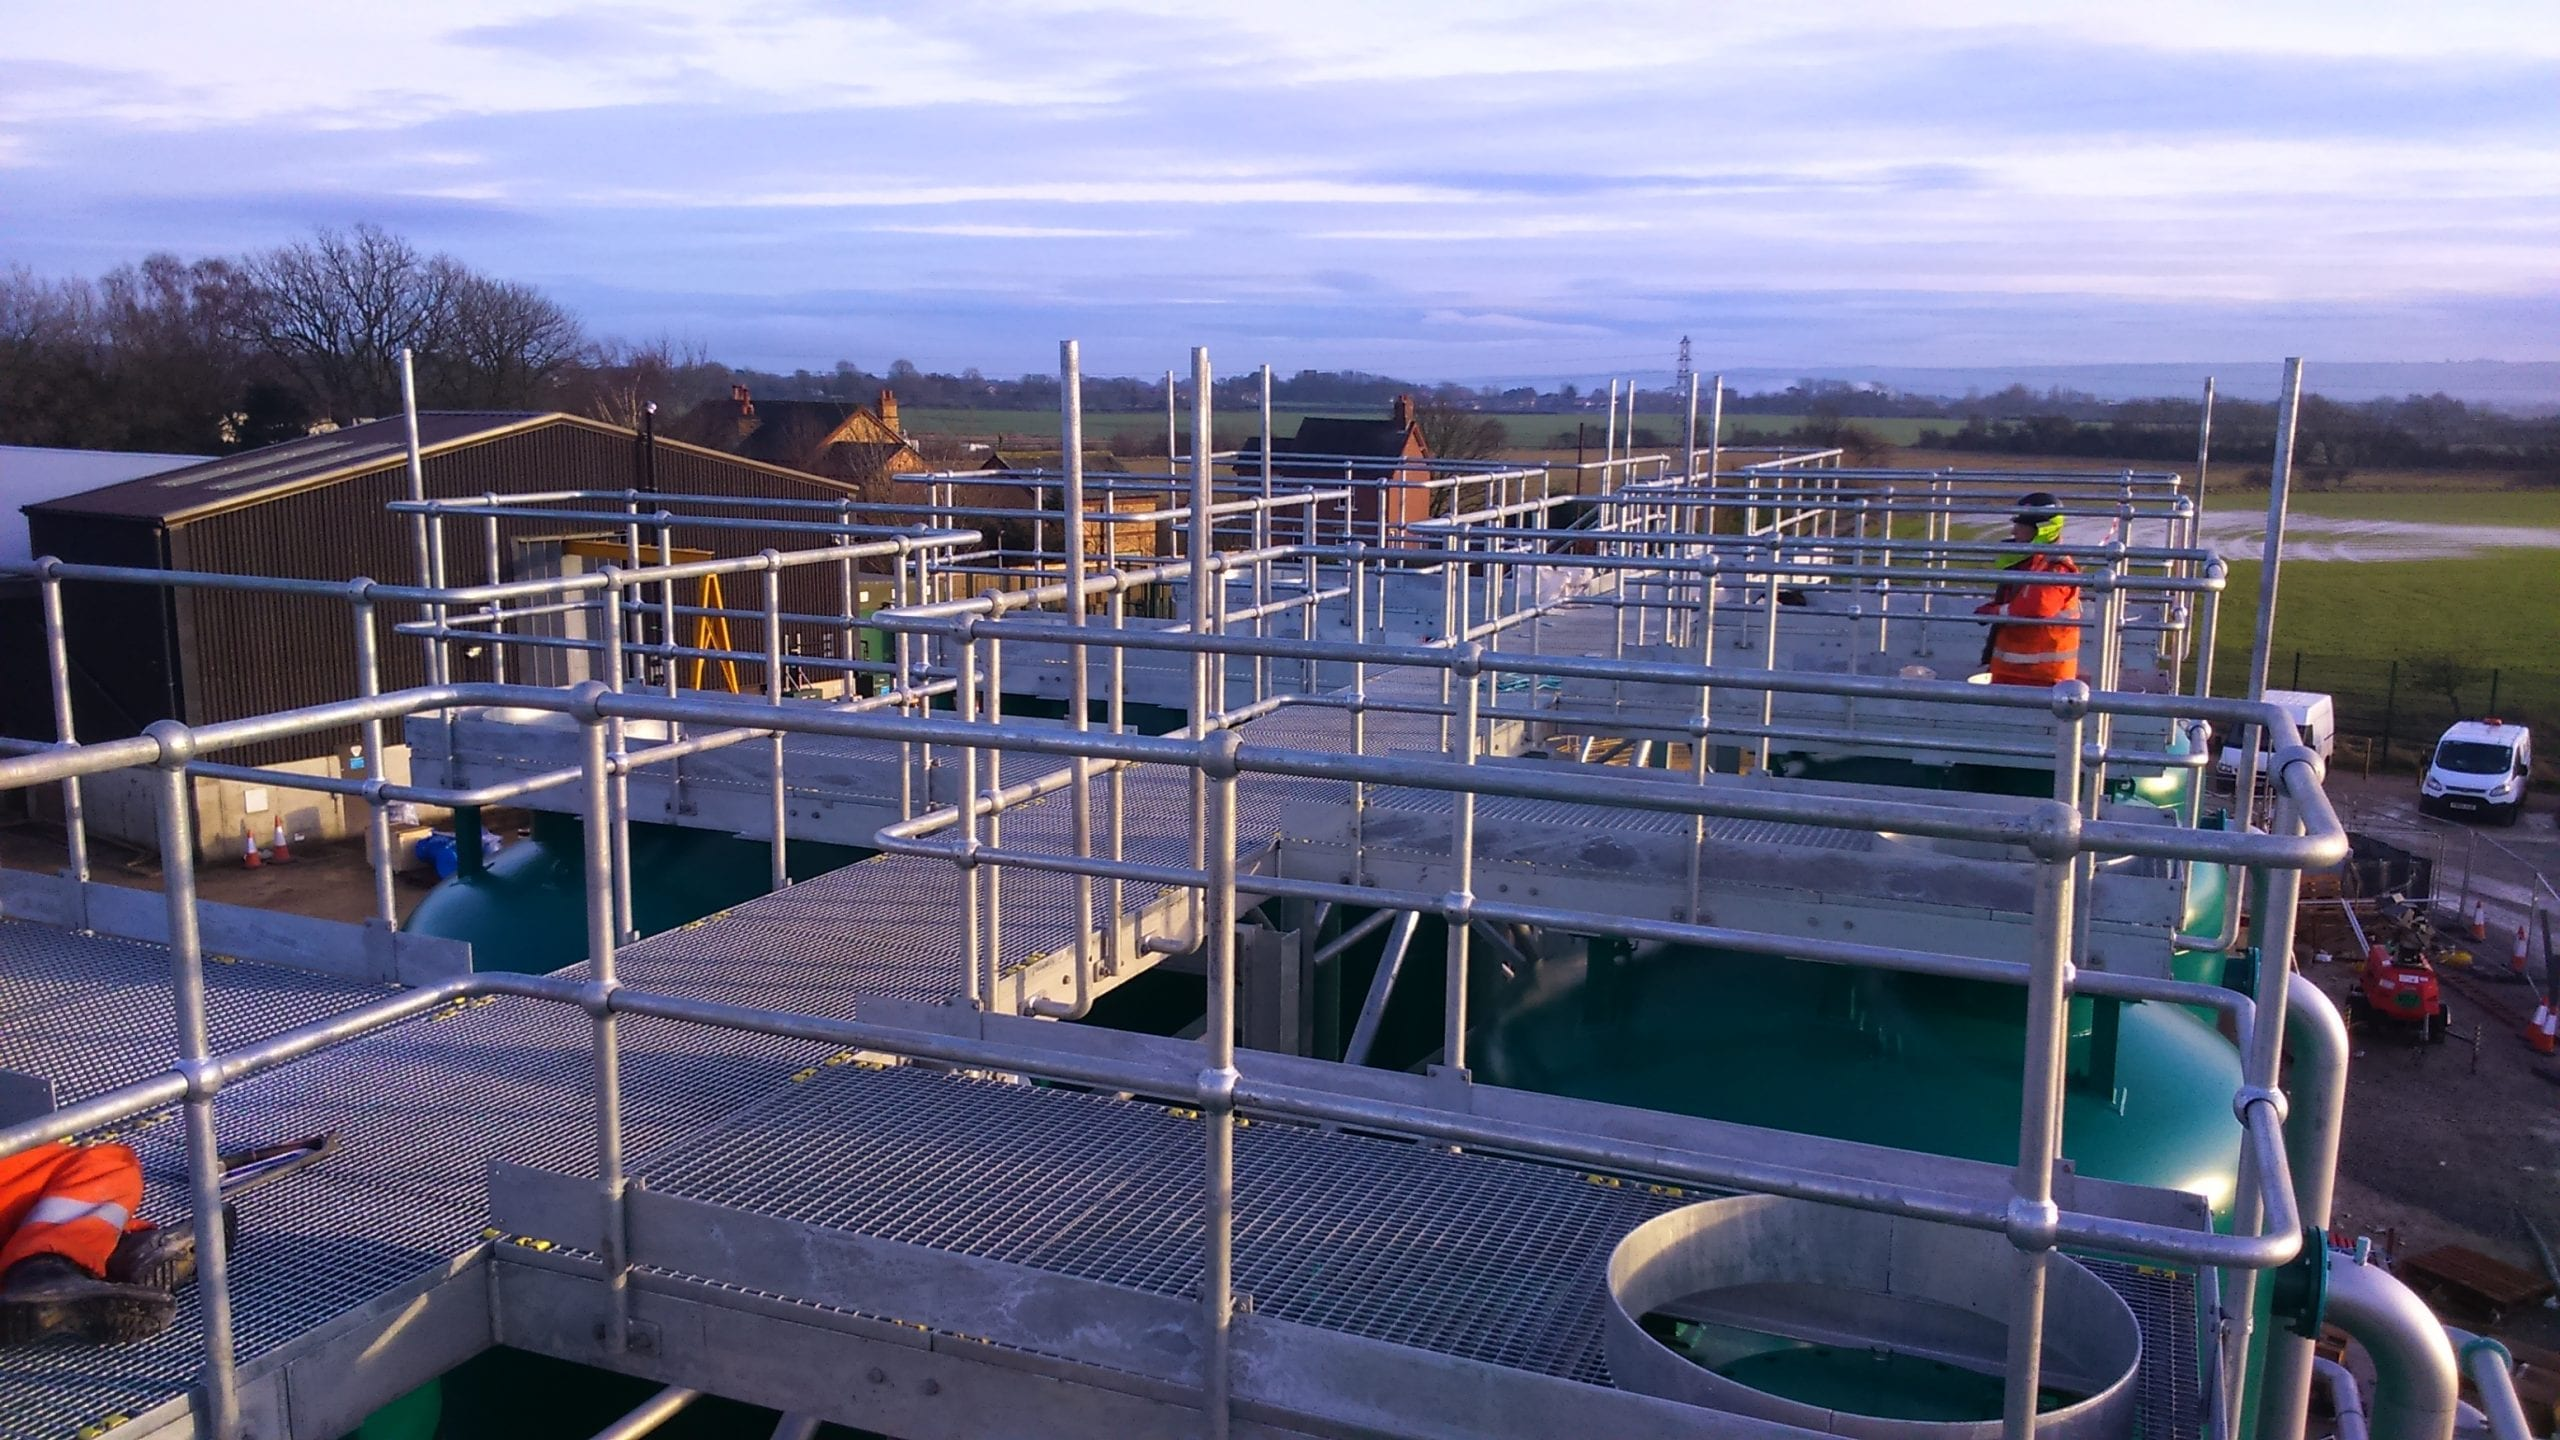 Irton Water Treatment Works (WTW) Featured Image